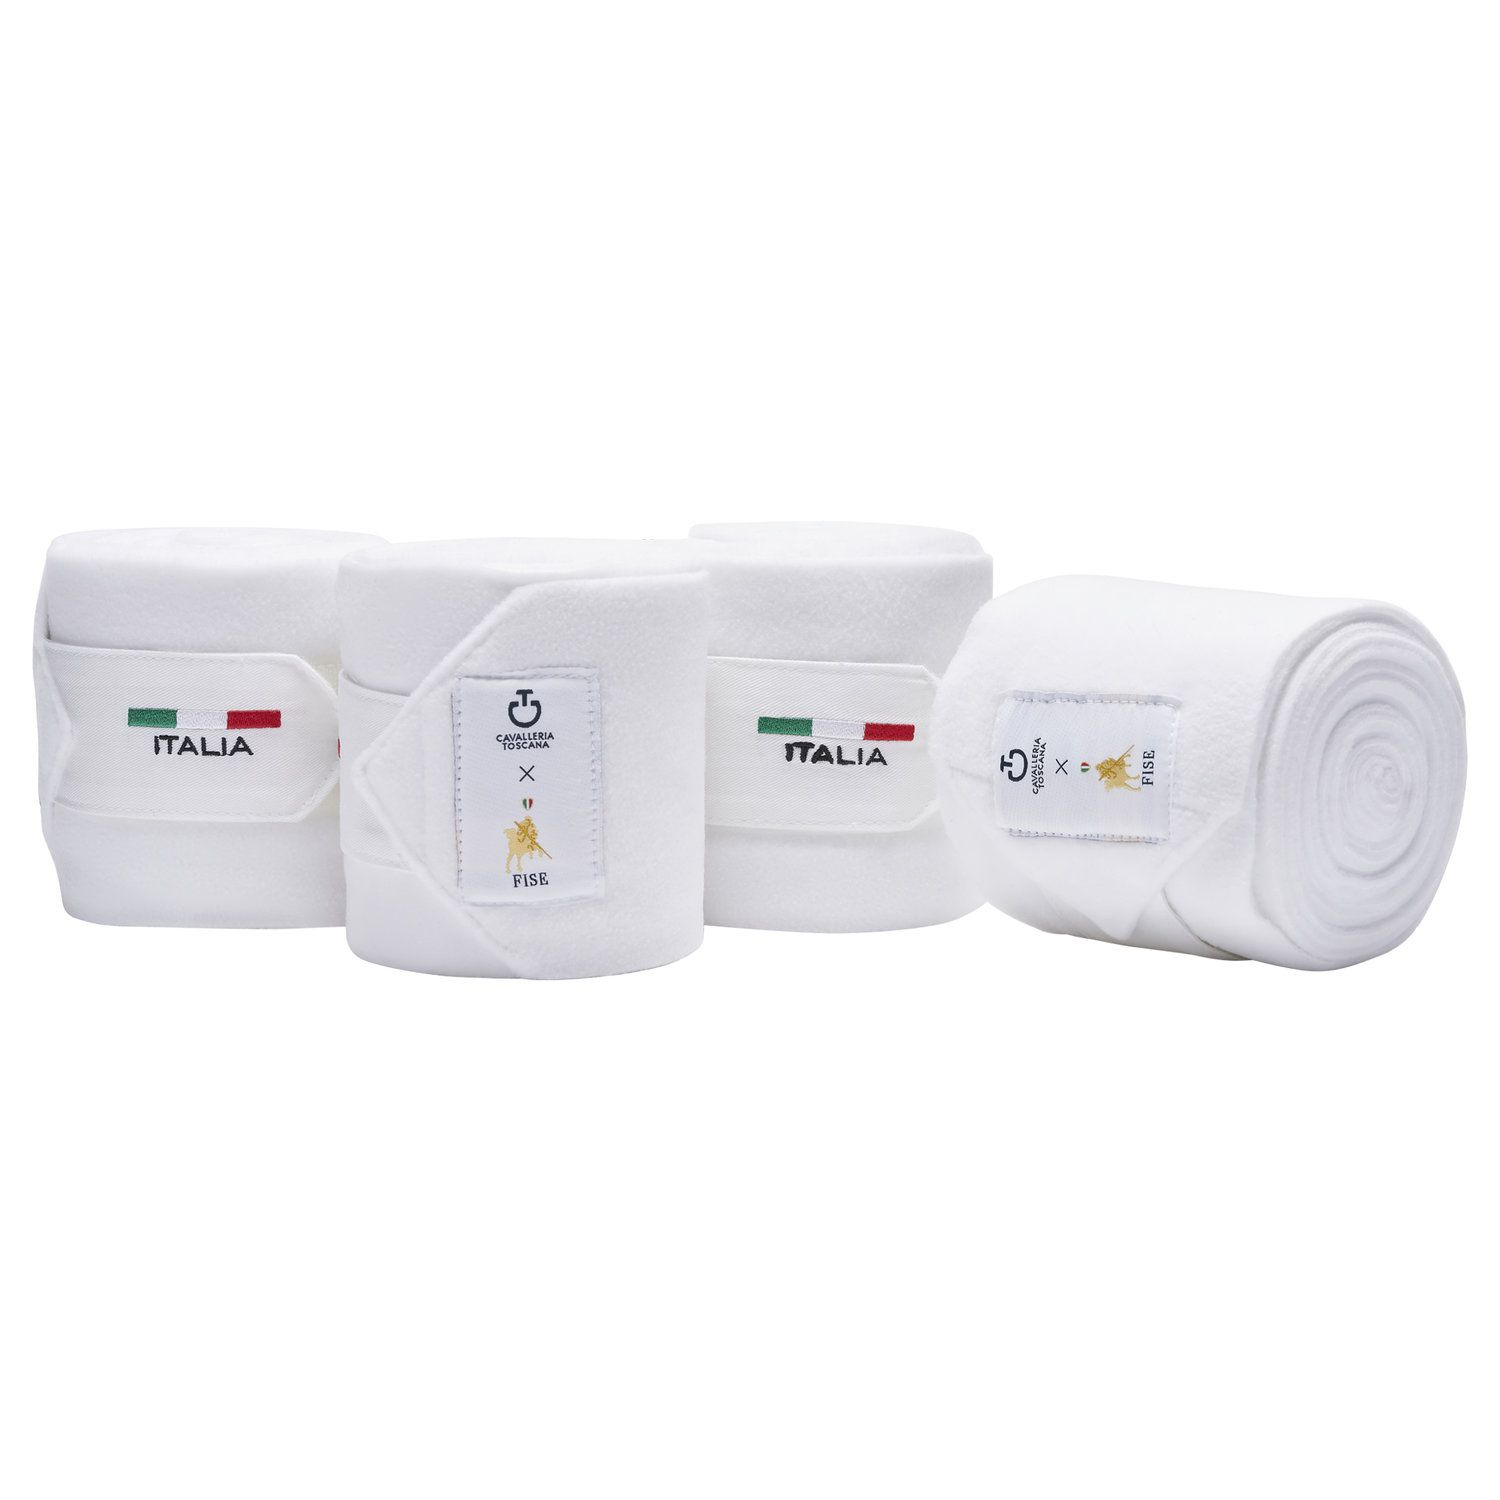 FISE fleece horse bandages